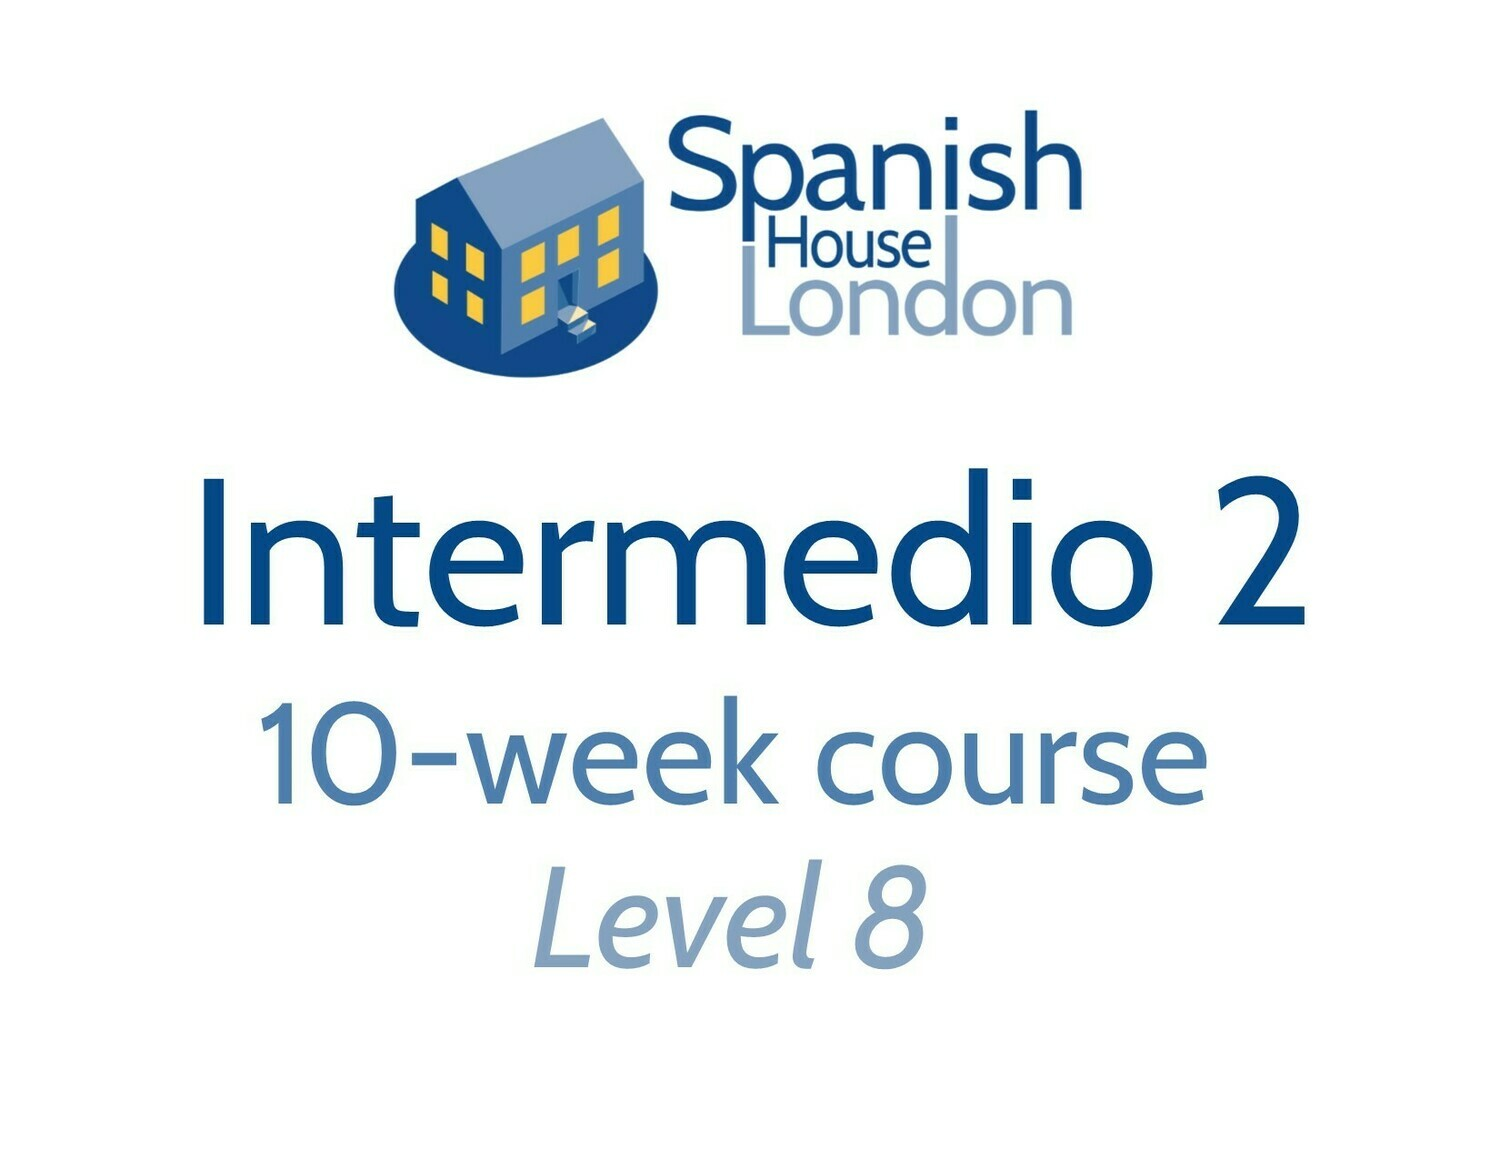 Intermedio 2 Course starting on 20th July at 6pm